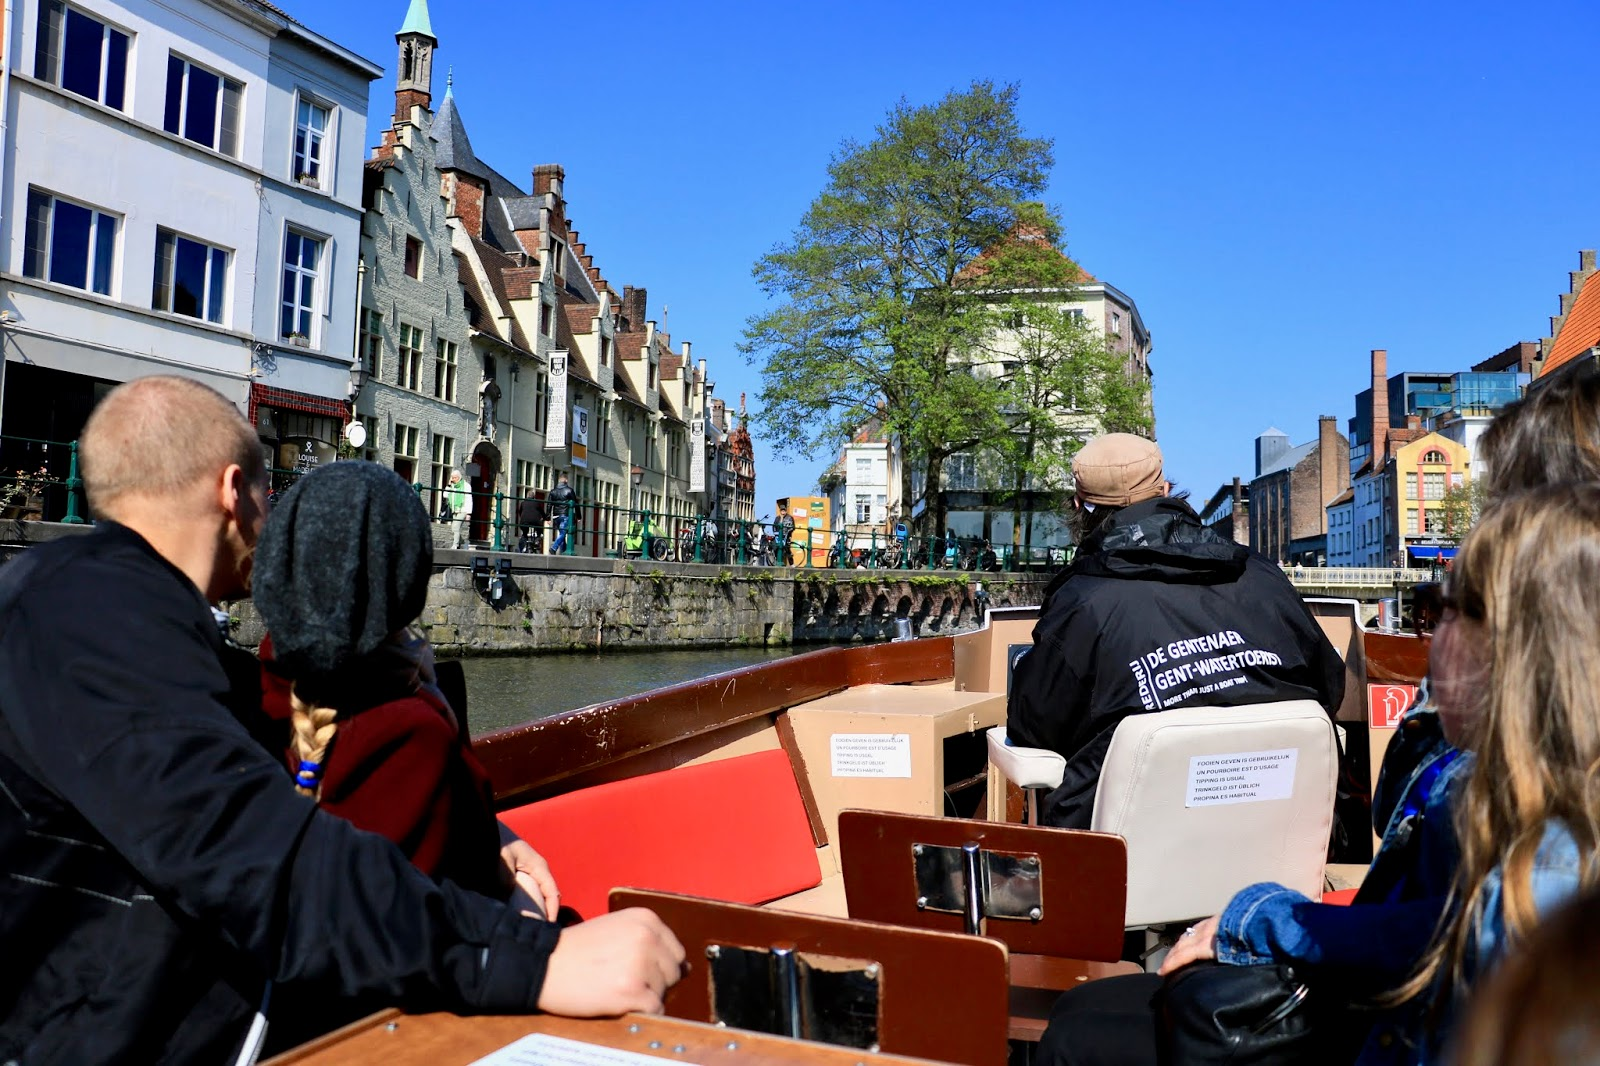 Travel blogger Kathleen Harper on a boat tour in Ghent, Belgium on the Lys river